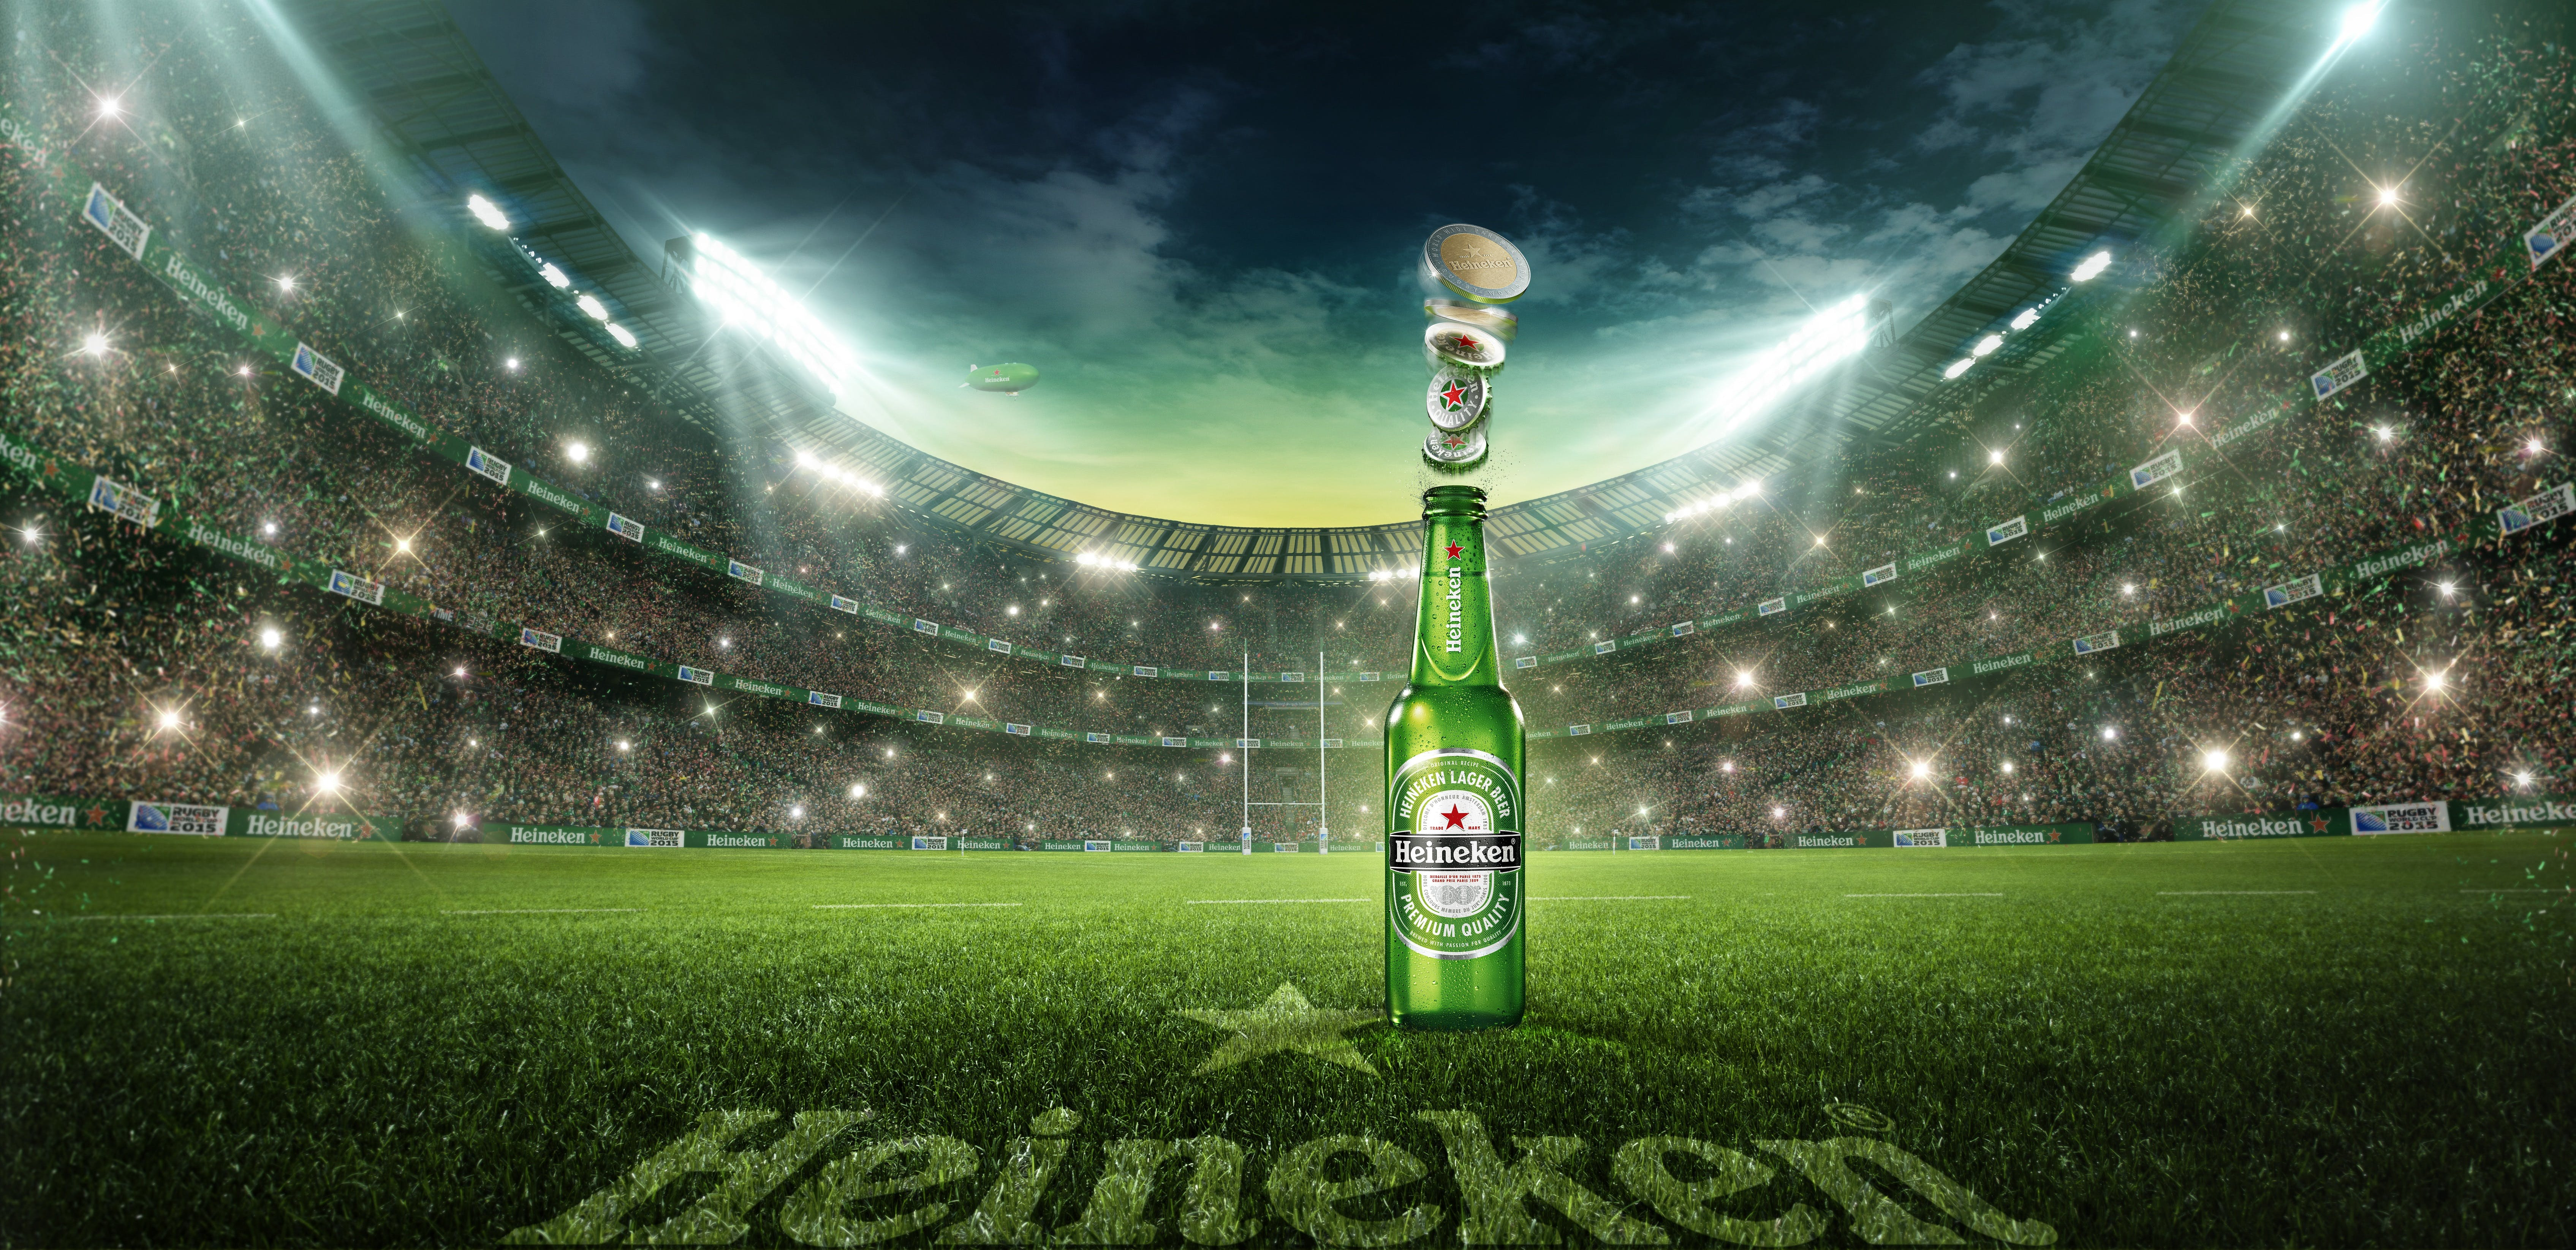 Heineken to push 50% of marketing budget into Rugby World Cup ...